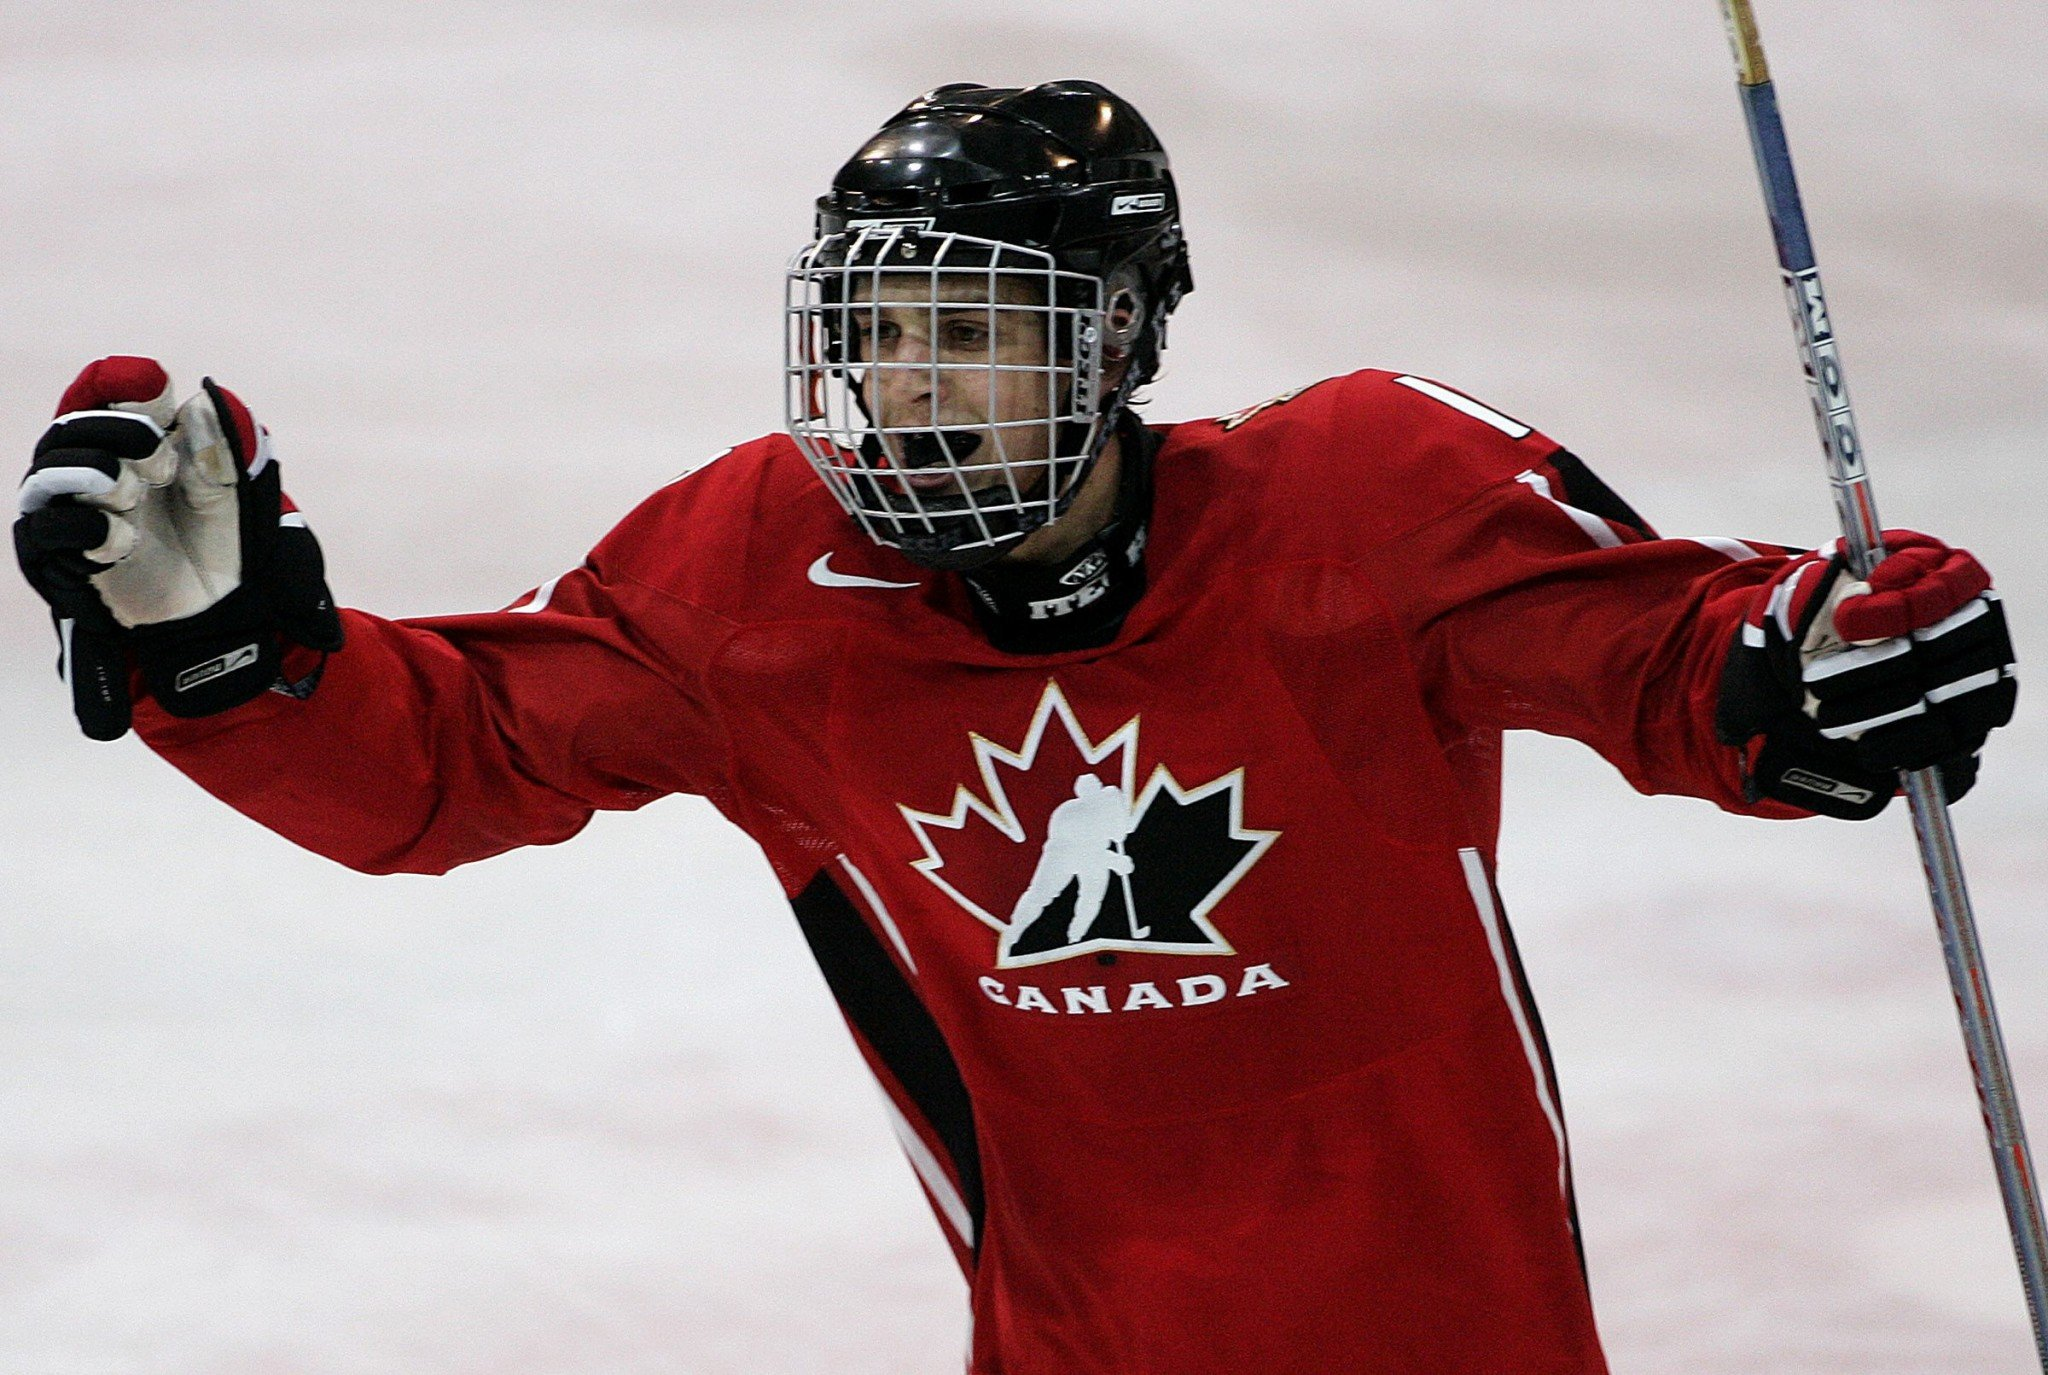 Canada's Brandon Sutter celebrates a goal against Switzerland during their U18 Memorial of Ivan Hlinka game. (CP Photo)